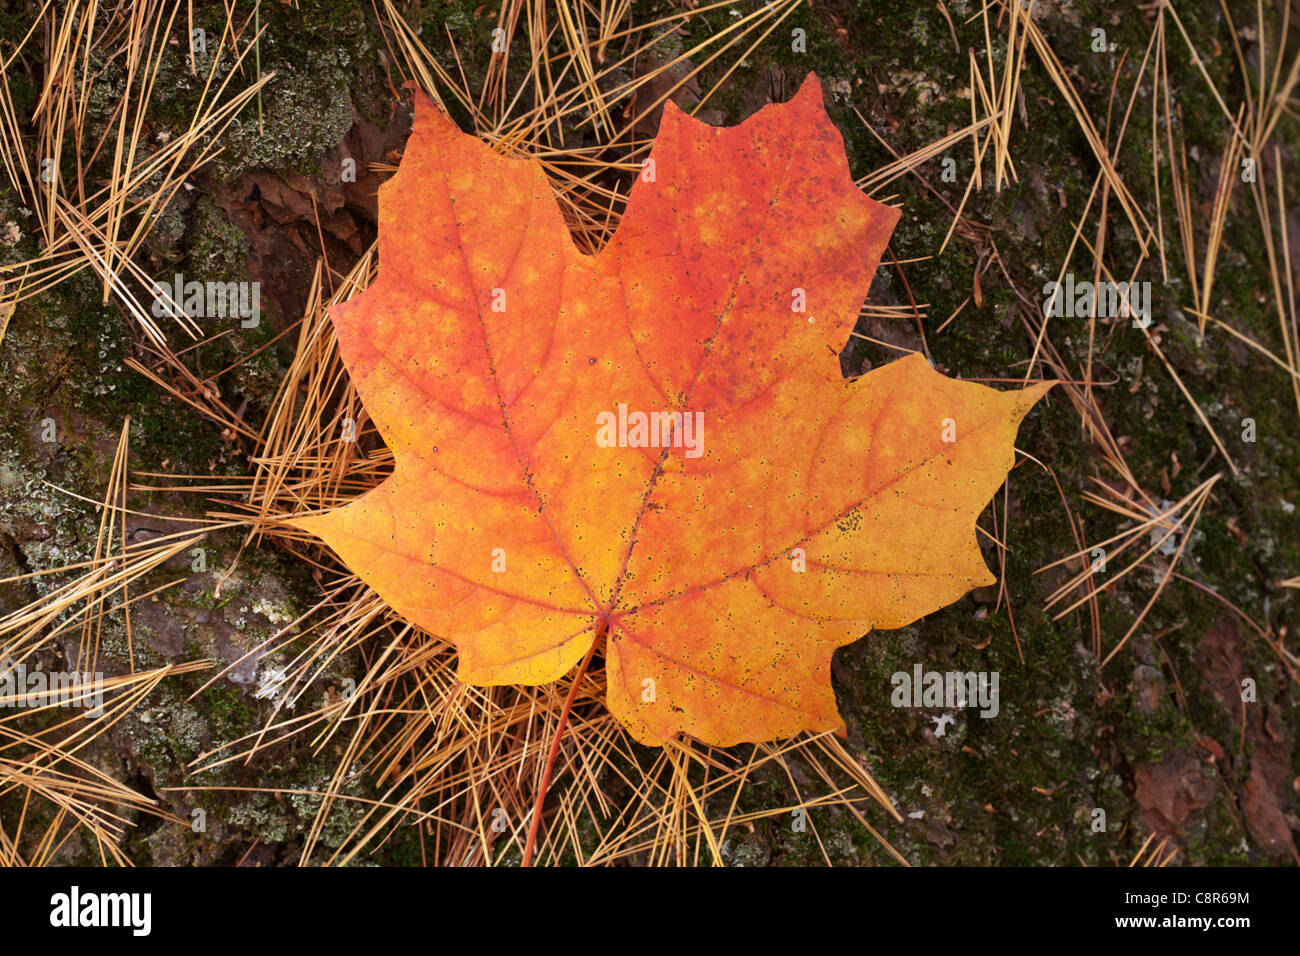 A fallen maple leaf amidst pine needles - Itasca State Park, Minnesota. - Stock Image